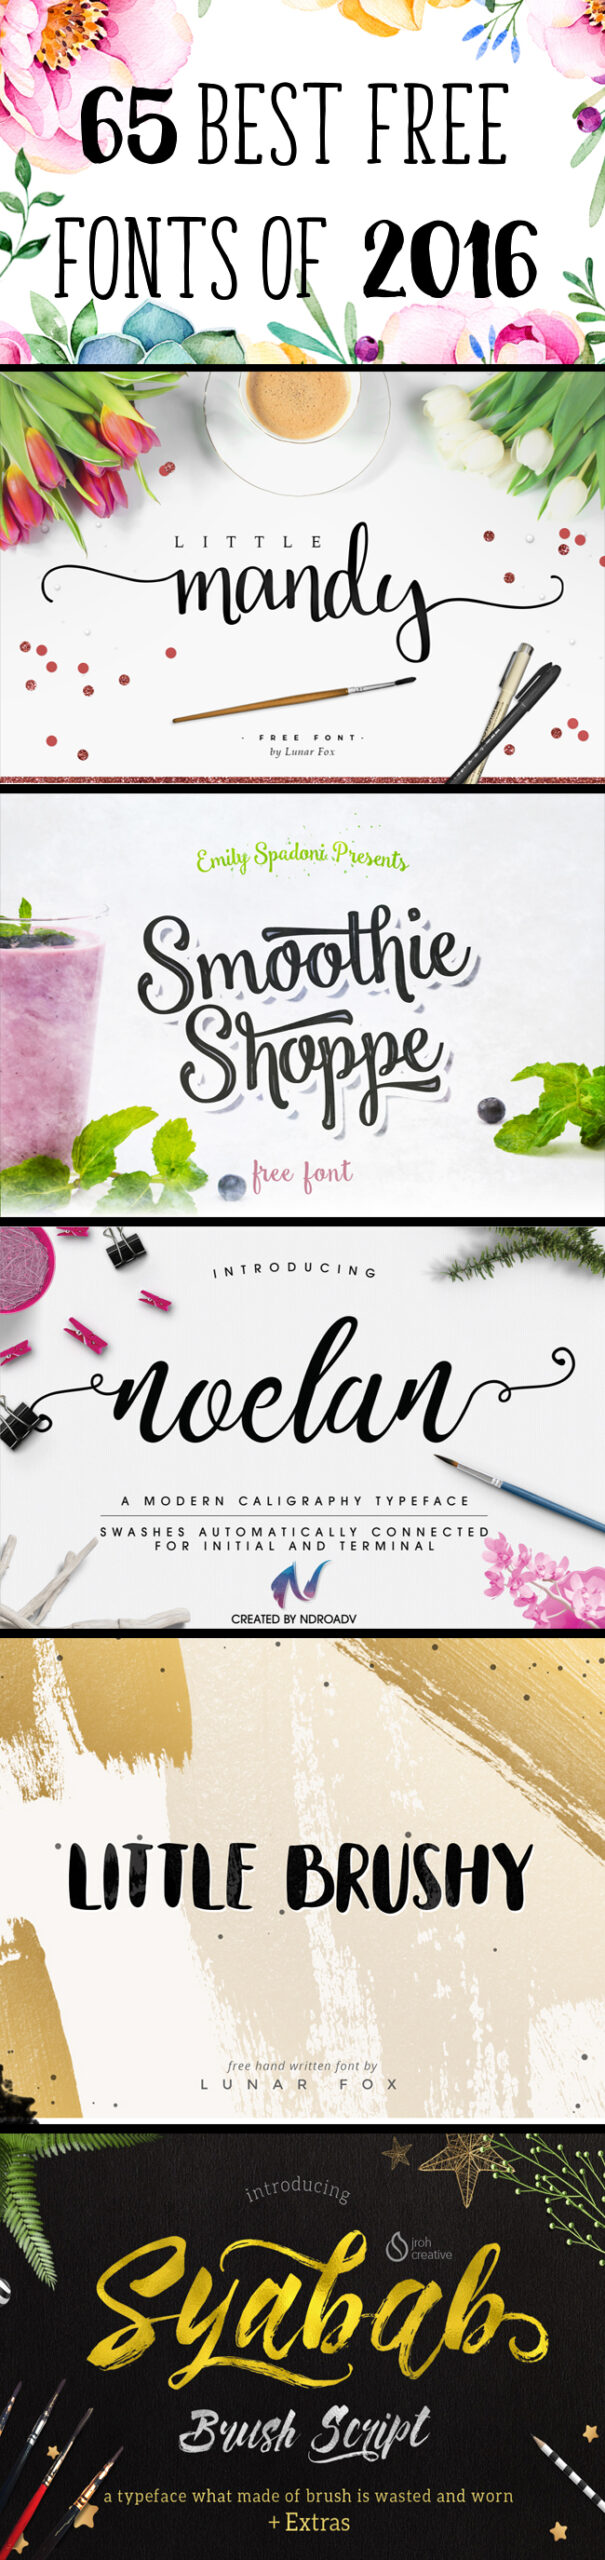 65-best-free-fonts-of-2016